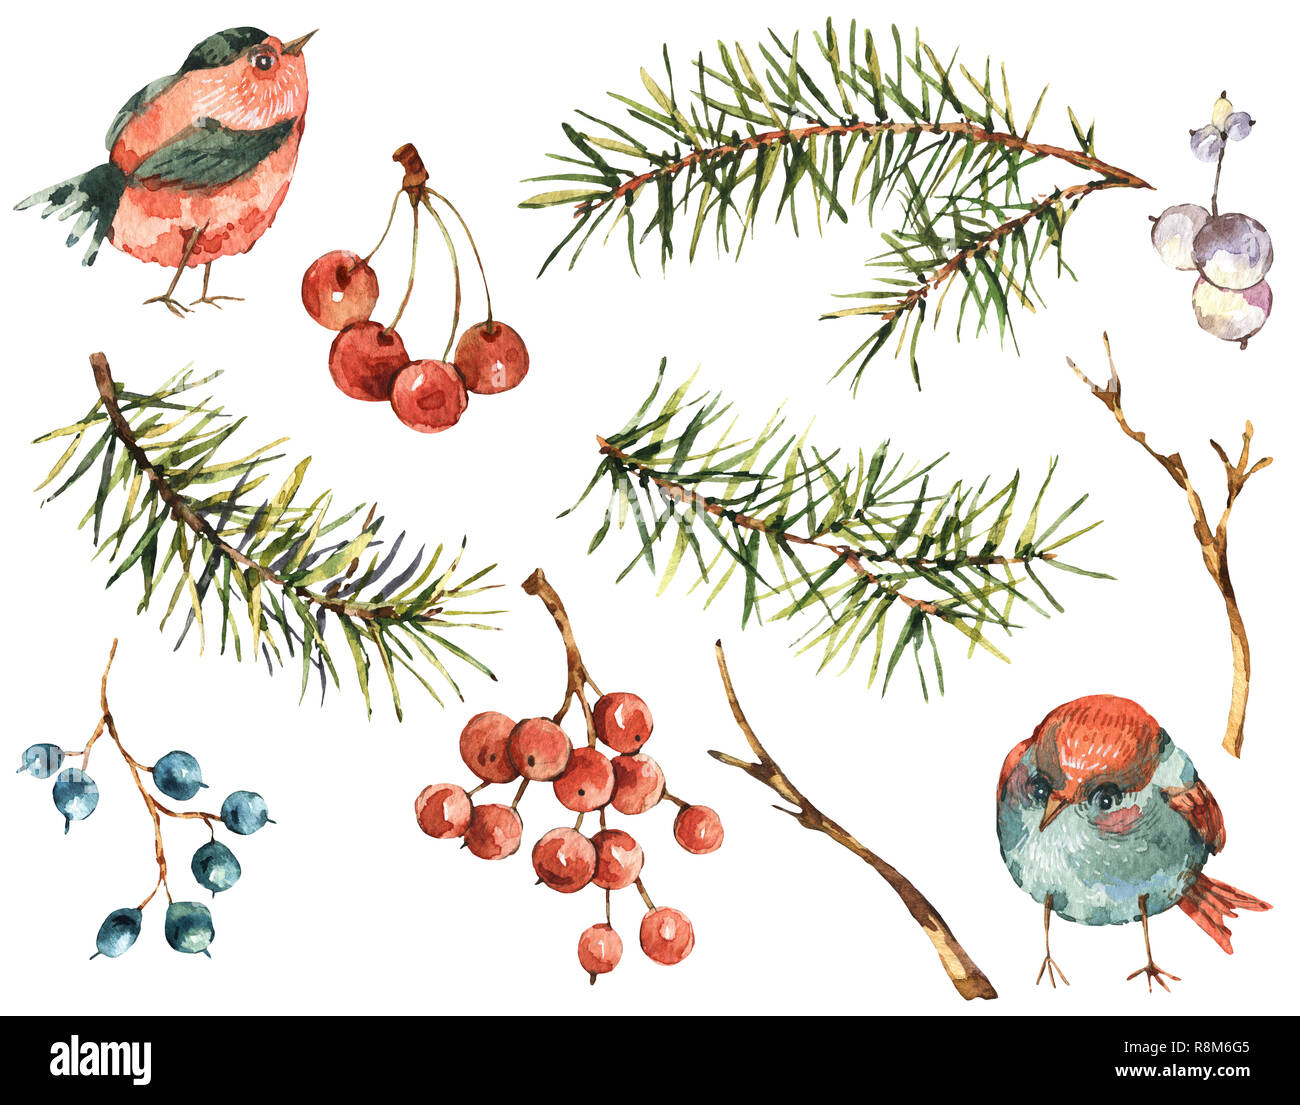 Winter Watercolor Christmas Set Of Tree Branches Birds Berries Natural Hand Painted Illustration Isolated On White Background Holidays Collection Stock Photo Alamy